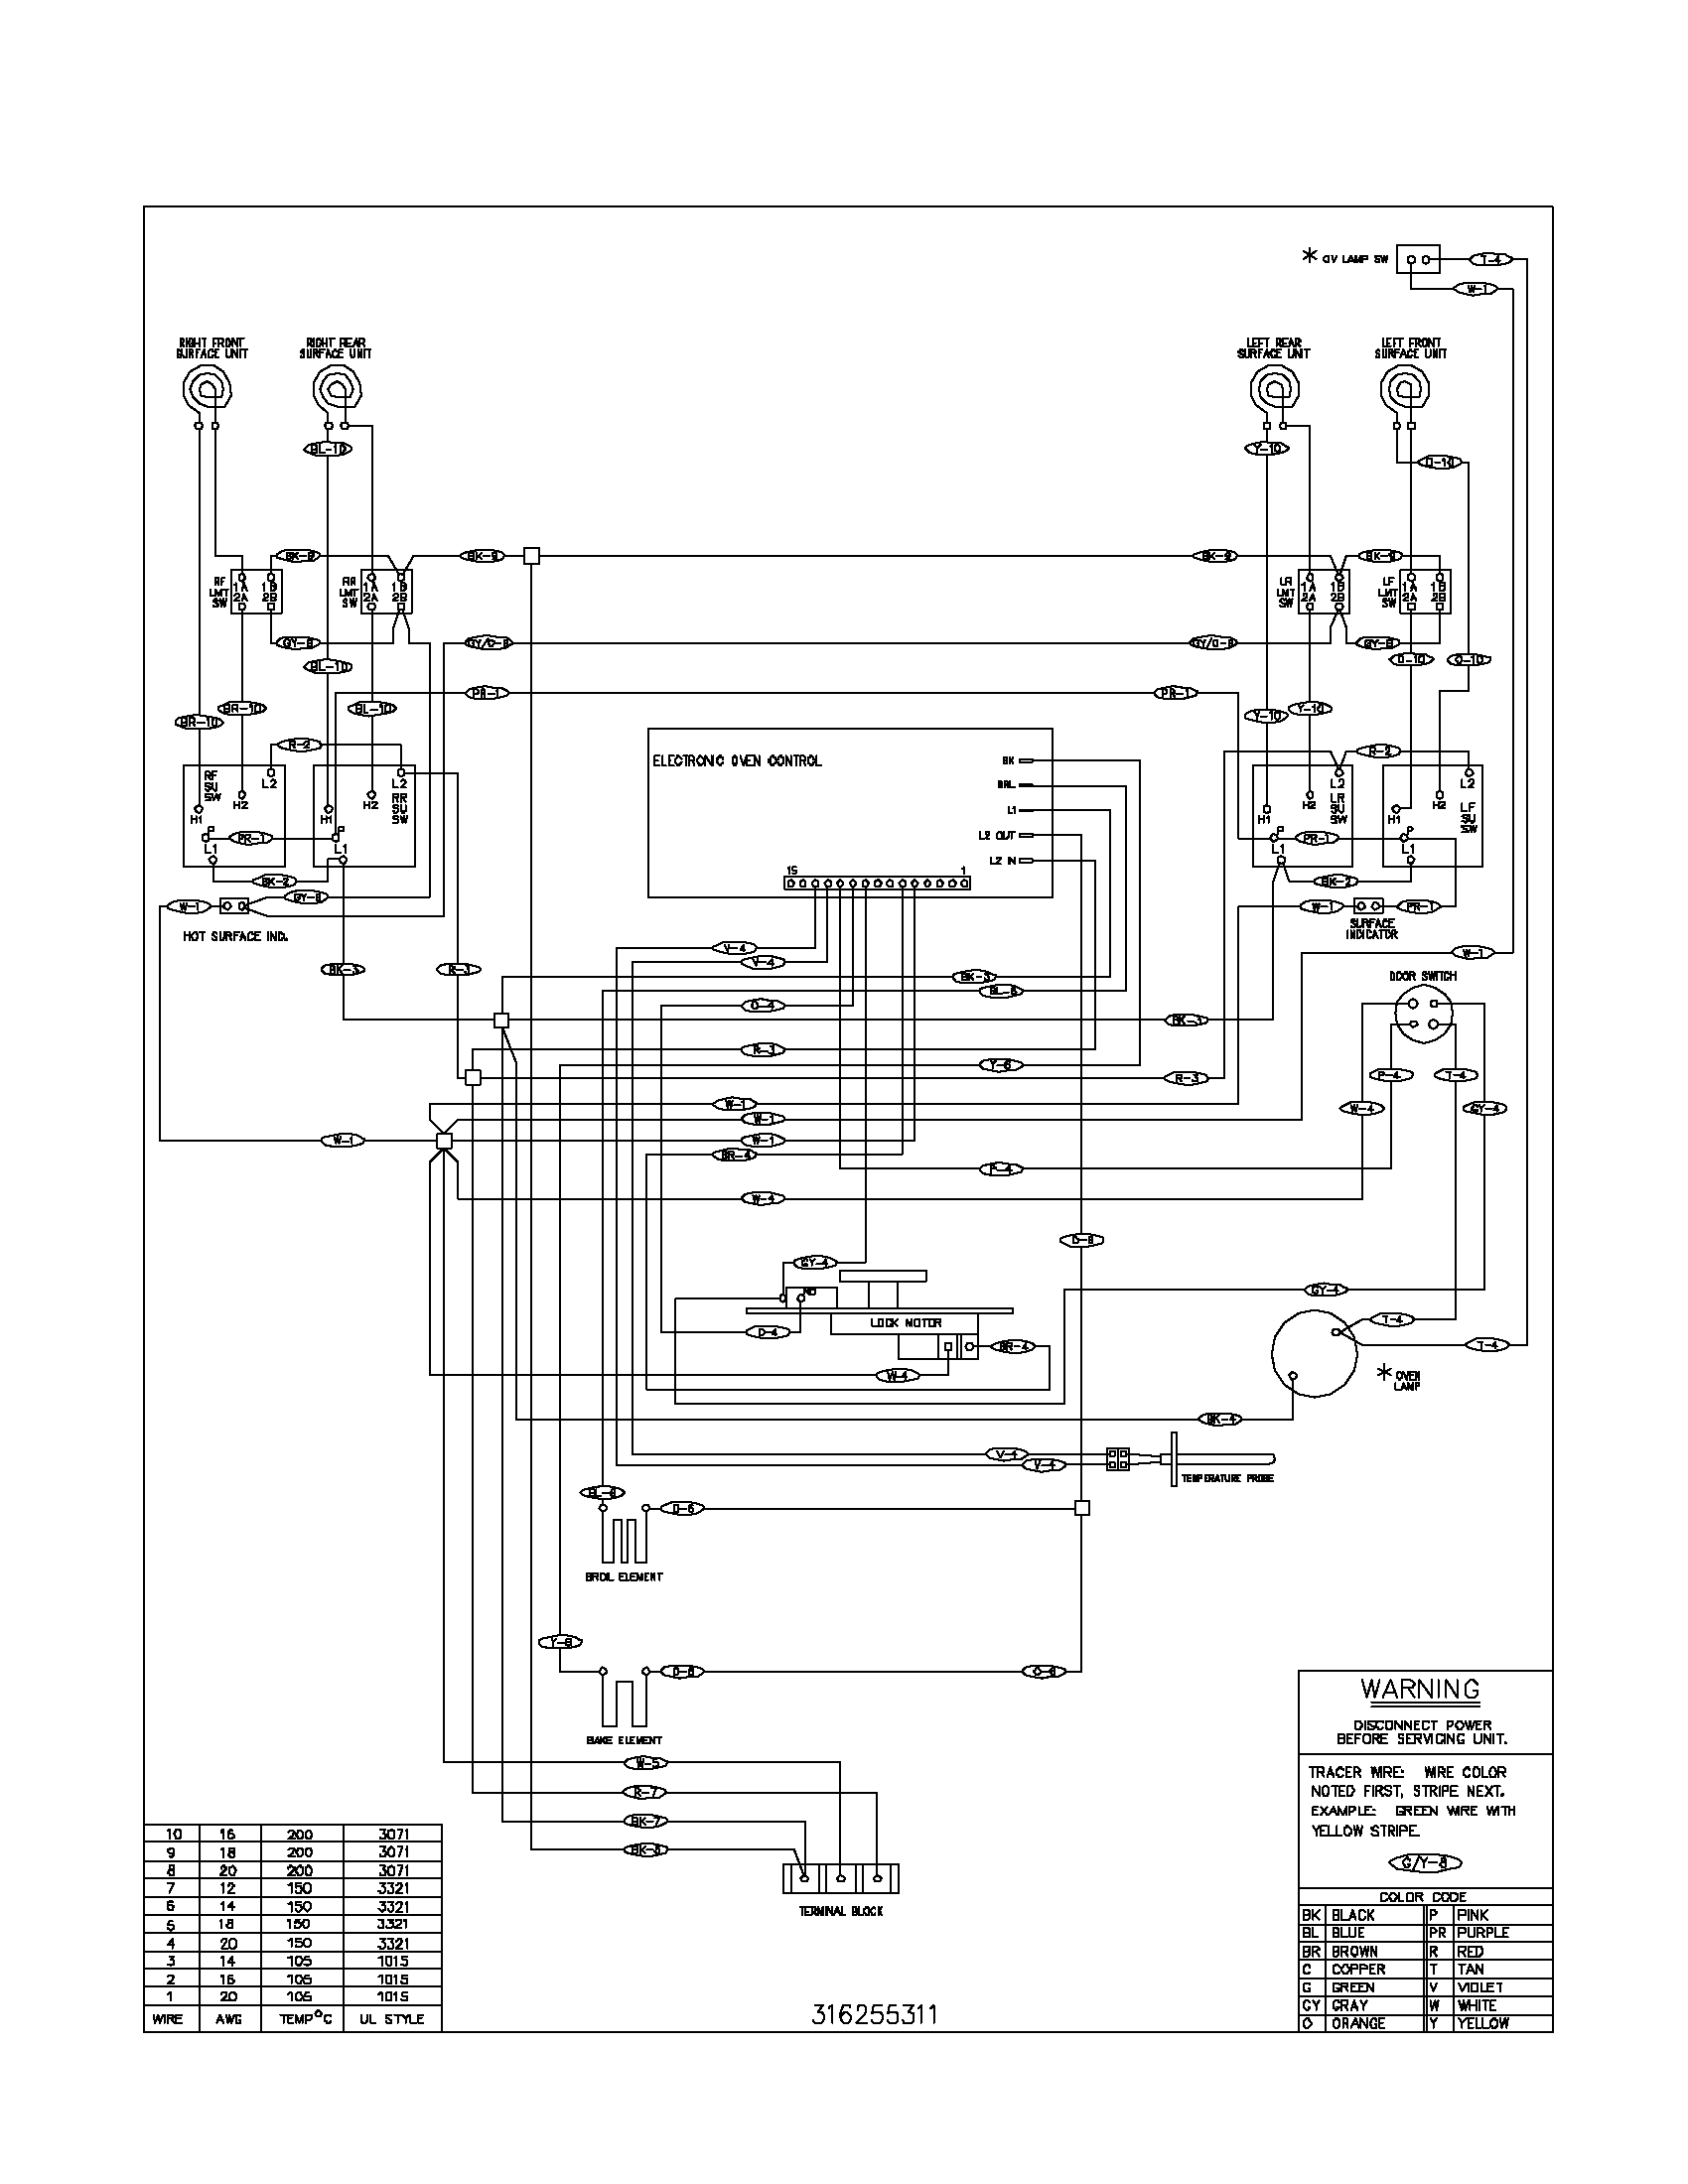 Unique Wiring Diagram Of Electric Cooker Diagram